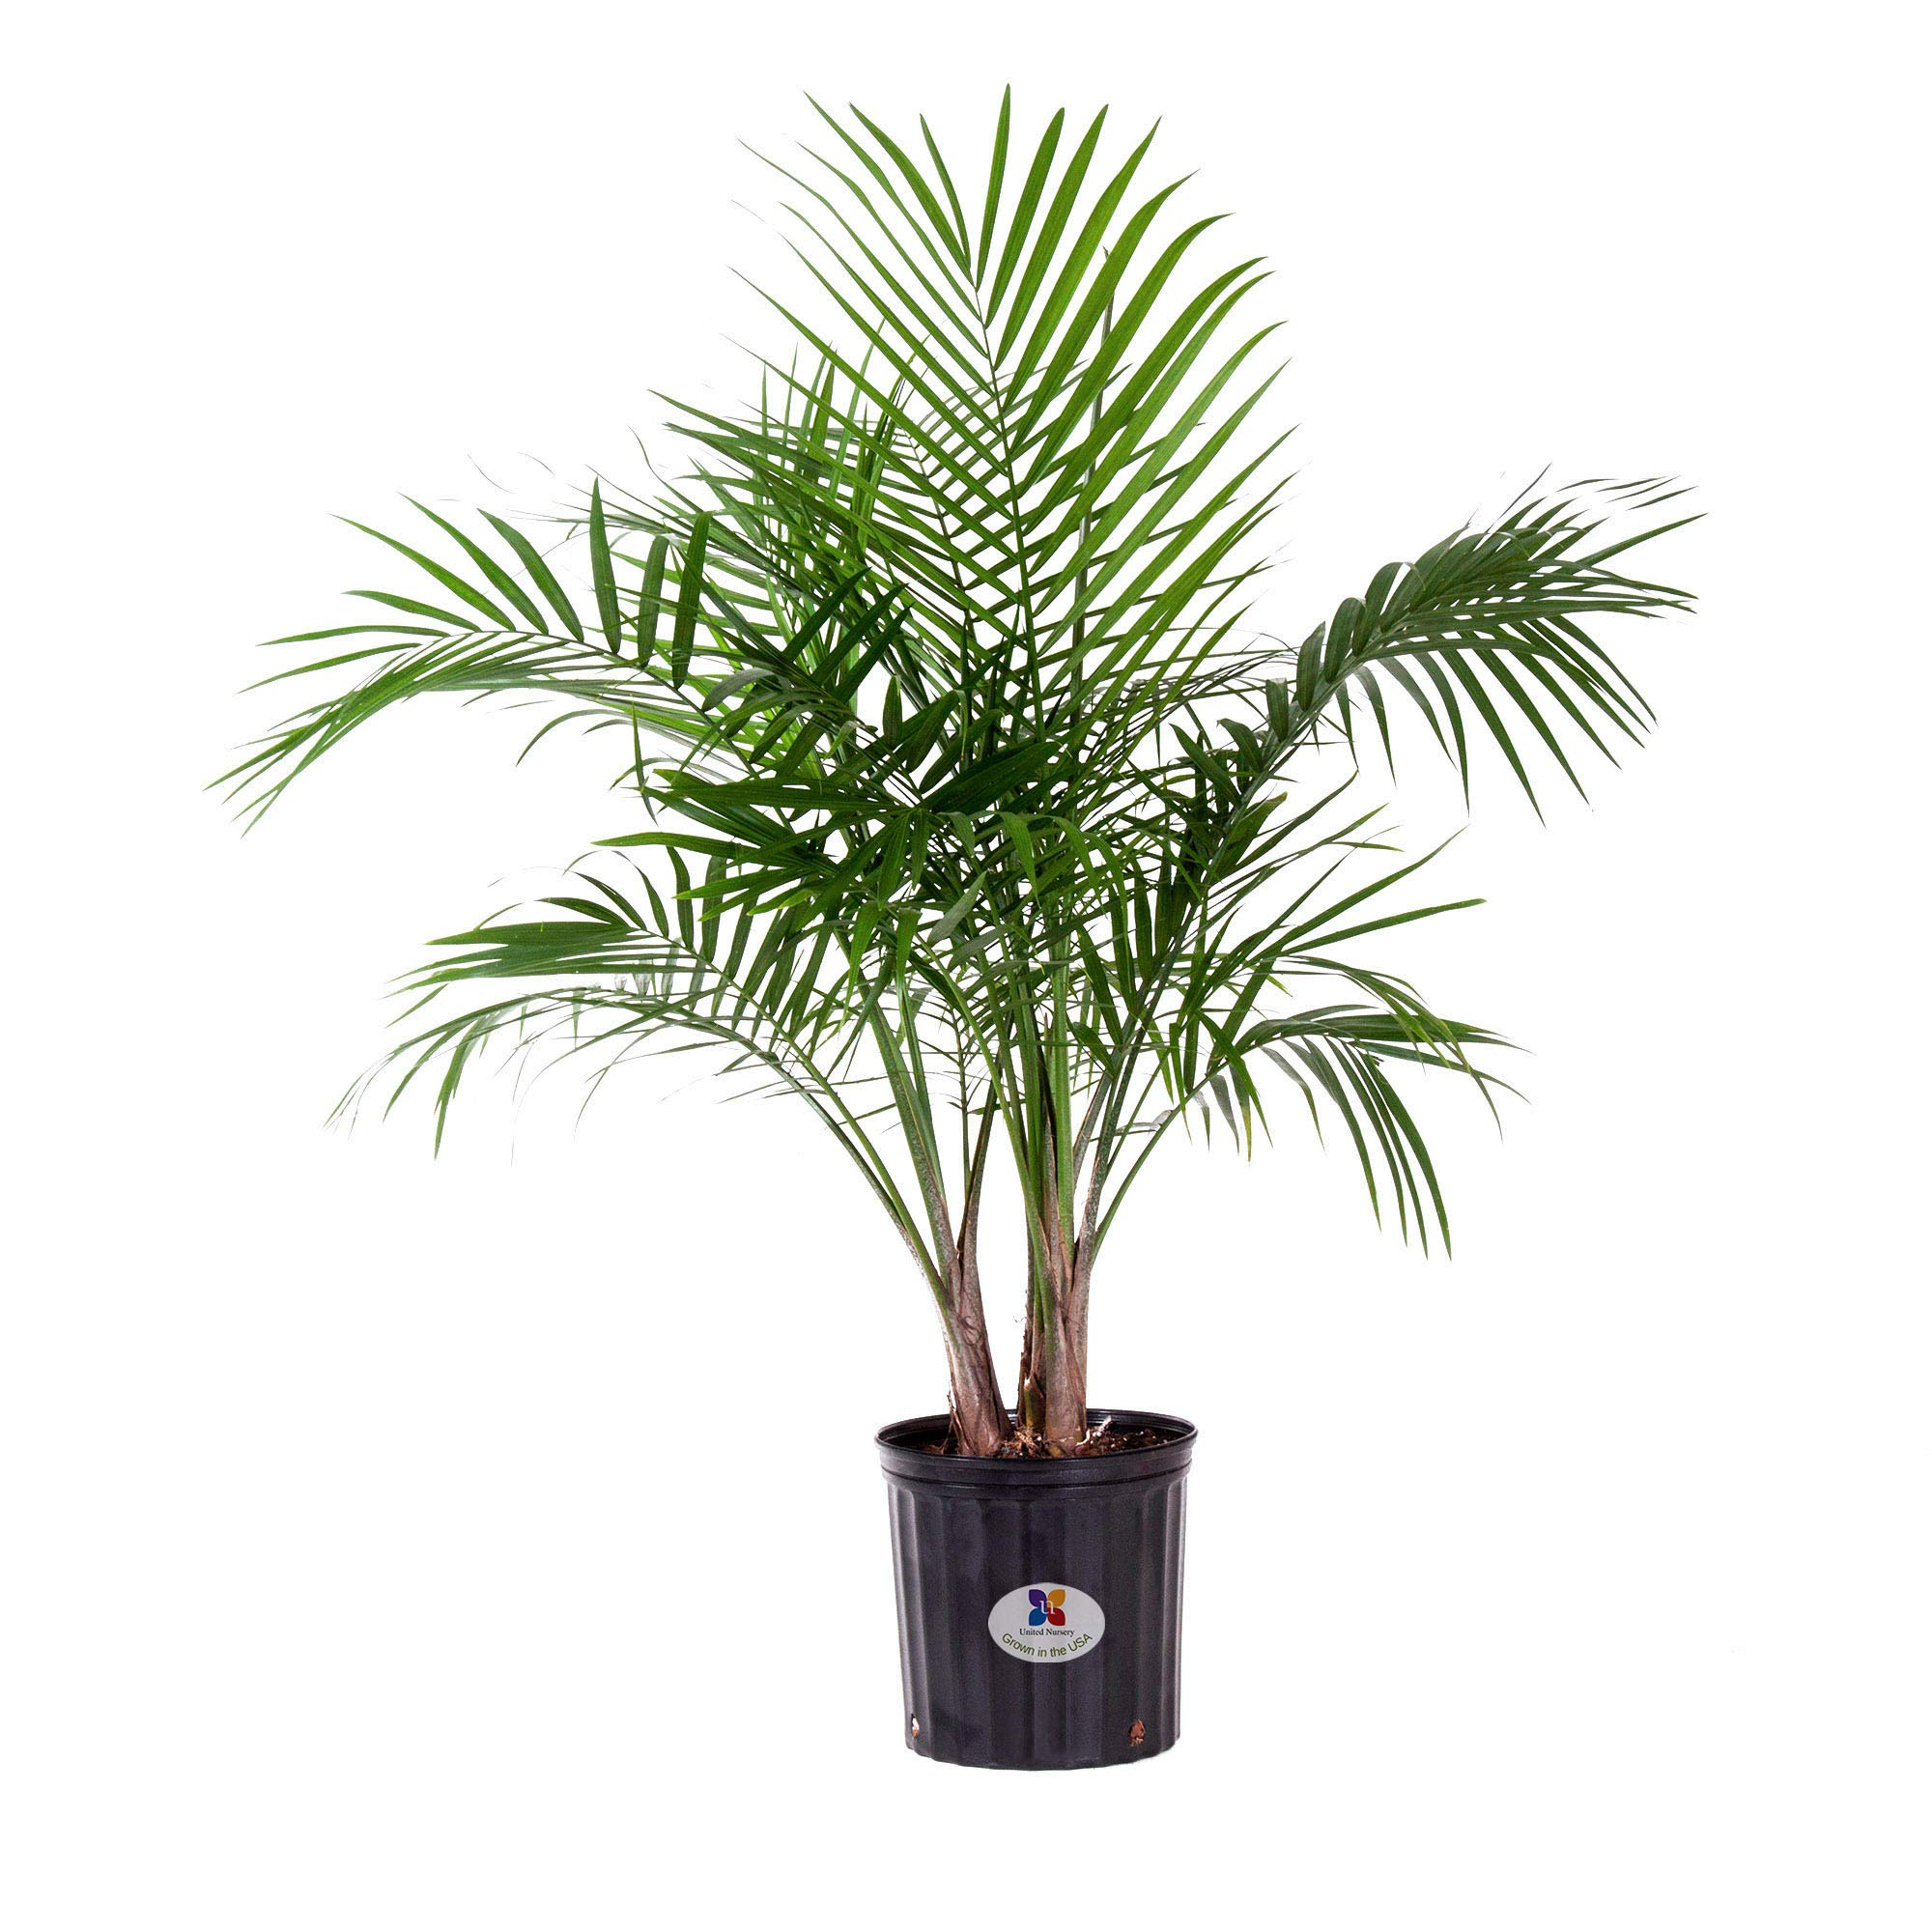 United Nursery Majesty Palm Tree, Live Indoor and Outdoor Plant 28-36'' Shipping Size. Shipped Fresh in Grower Pot from Our Florida Farm by United Nursery (Image #1)